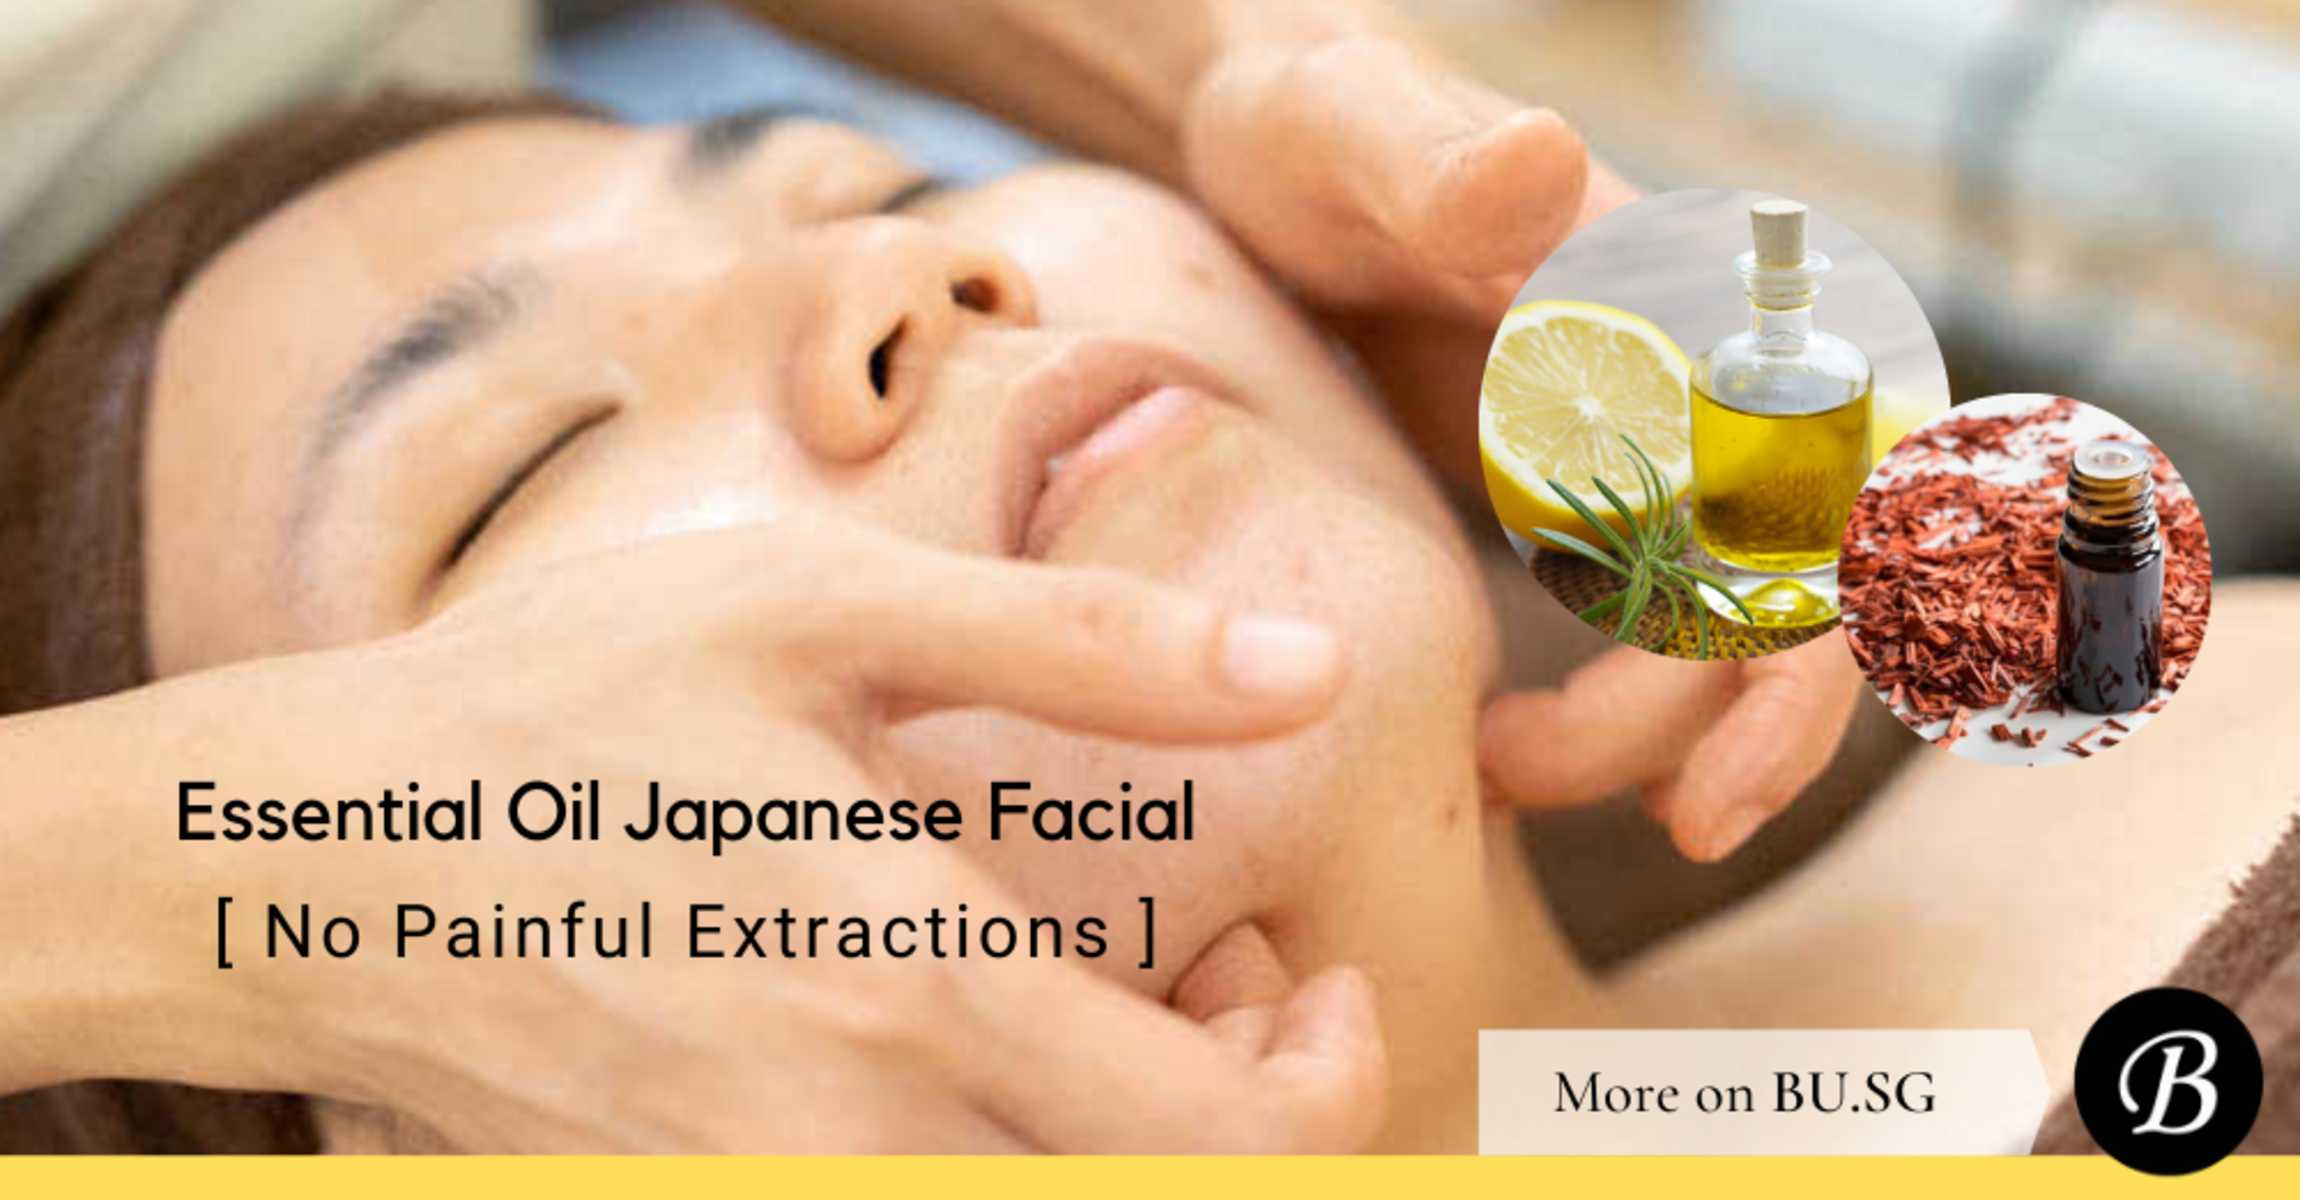 Face Plus by Yamano Uses These 6 Essential Oils to Successfully Alleviate Acne in their No-Extraction Facial. Guess what they are?